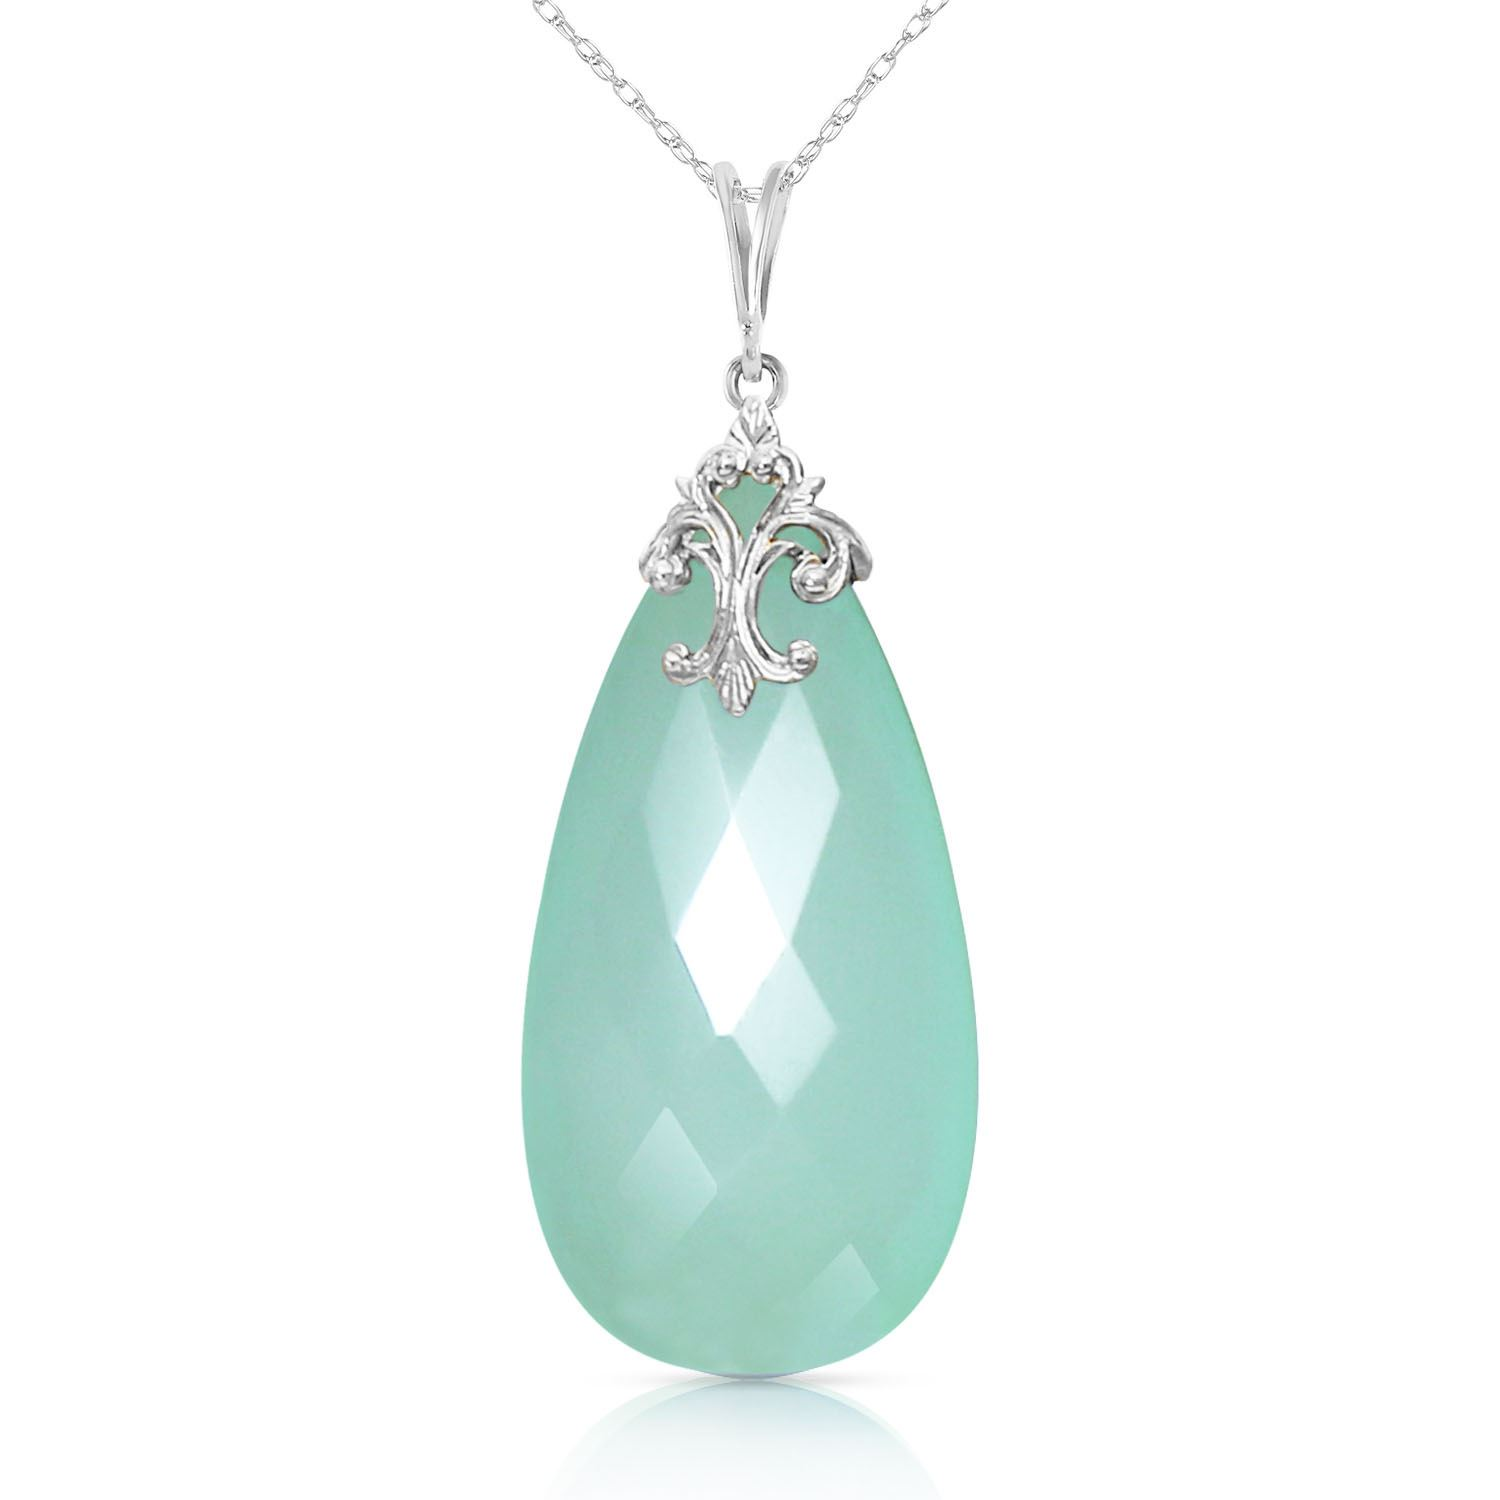 ALARRI 14K Solid White Gold Necklace with Briolette 31x16 mm Mint Green Chalcedony with 20 Inch Chain Length. by ALARRI